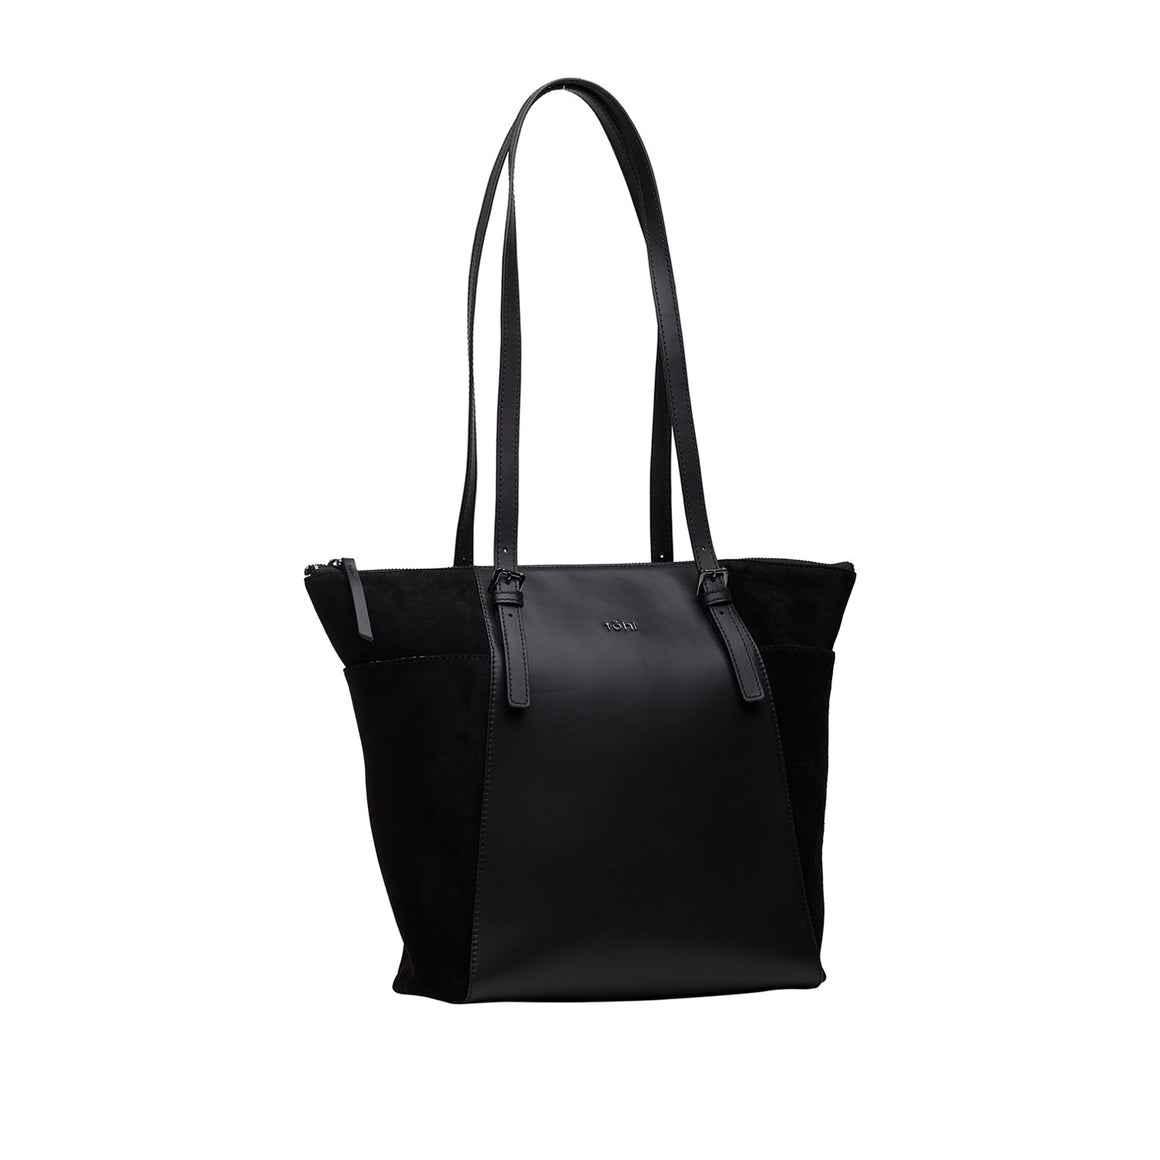 TT 0001 - TOHL MERCER WOMEN'S TOTE BAG - CHARCOAL BLACK